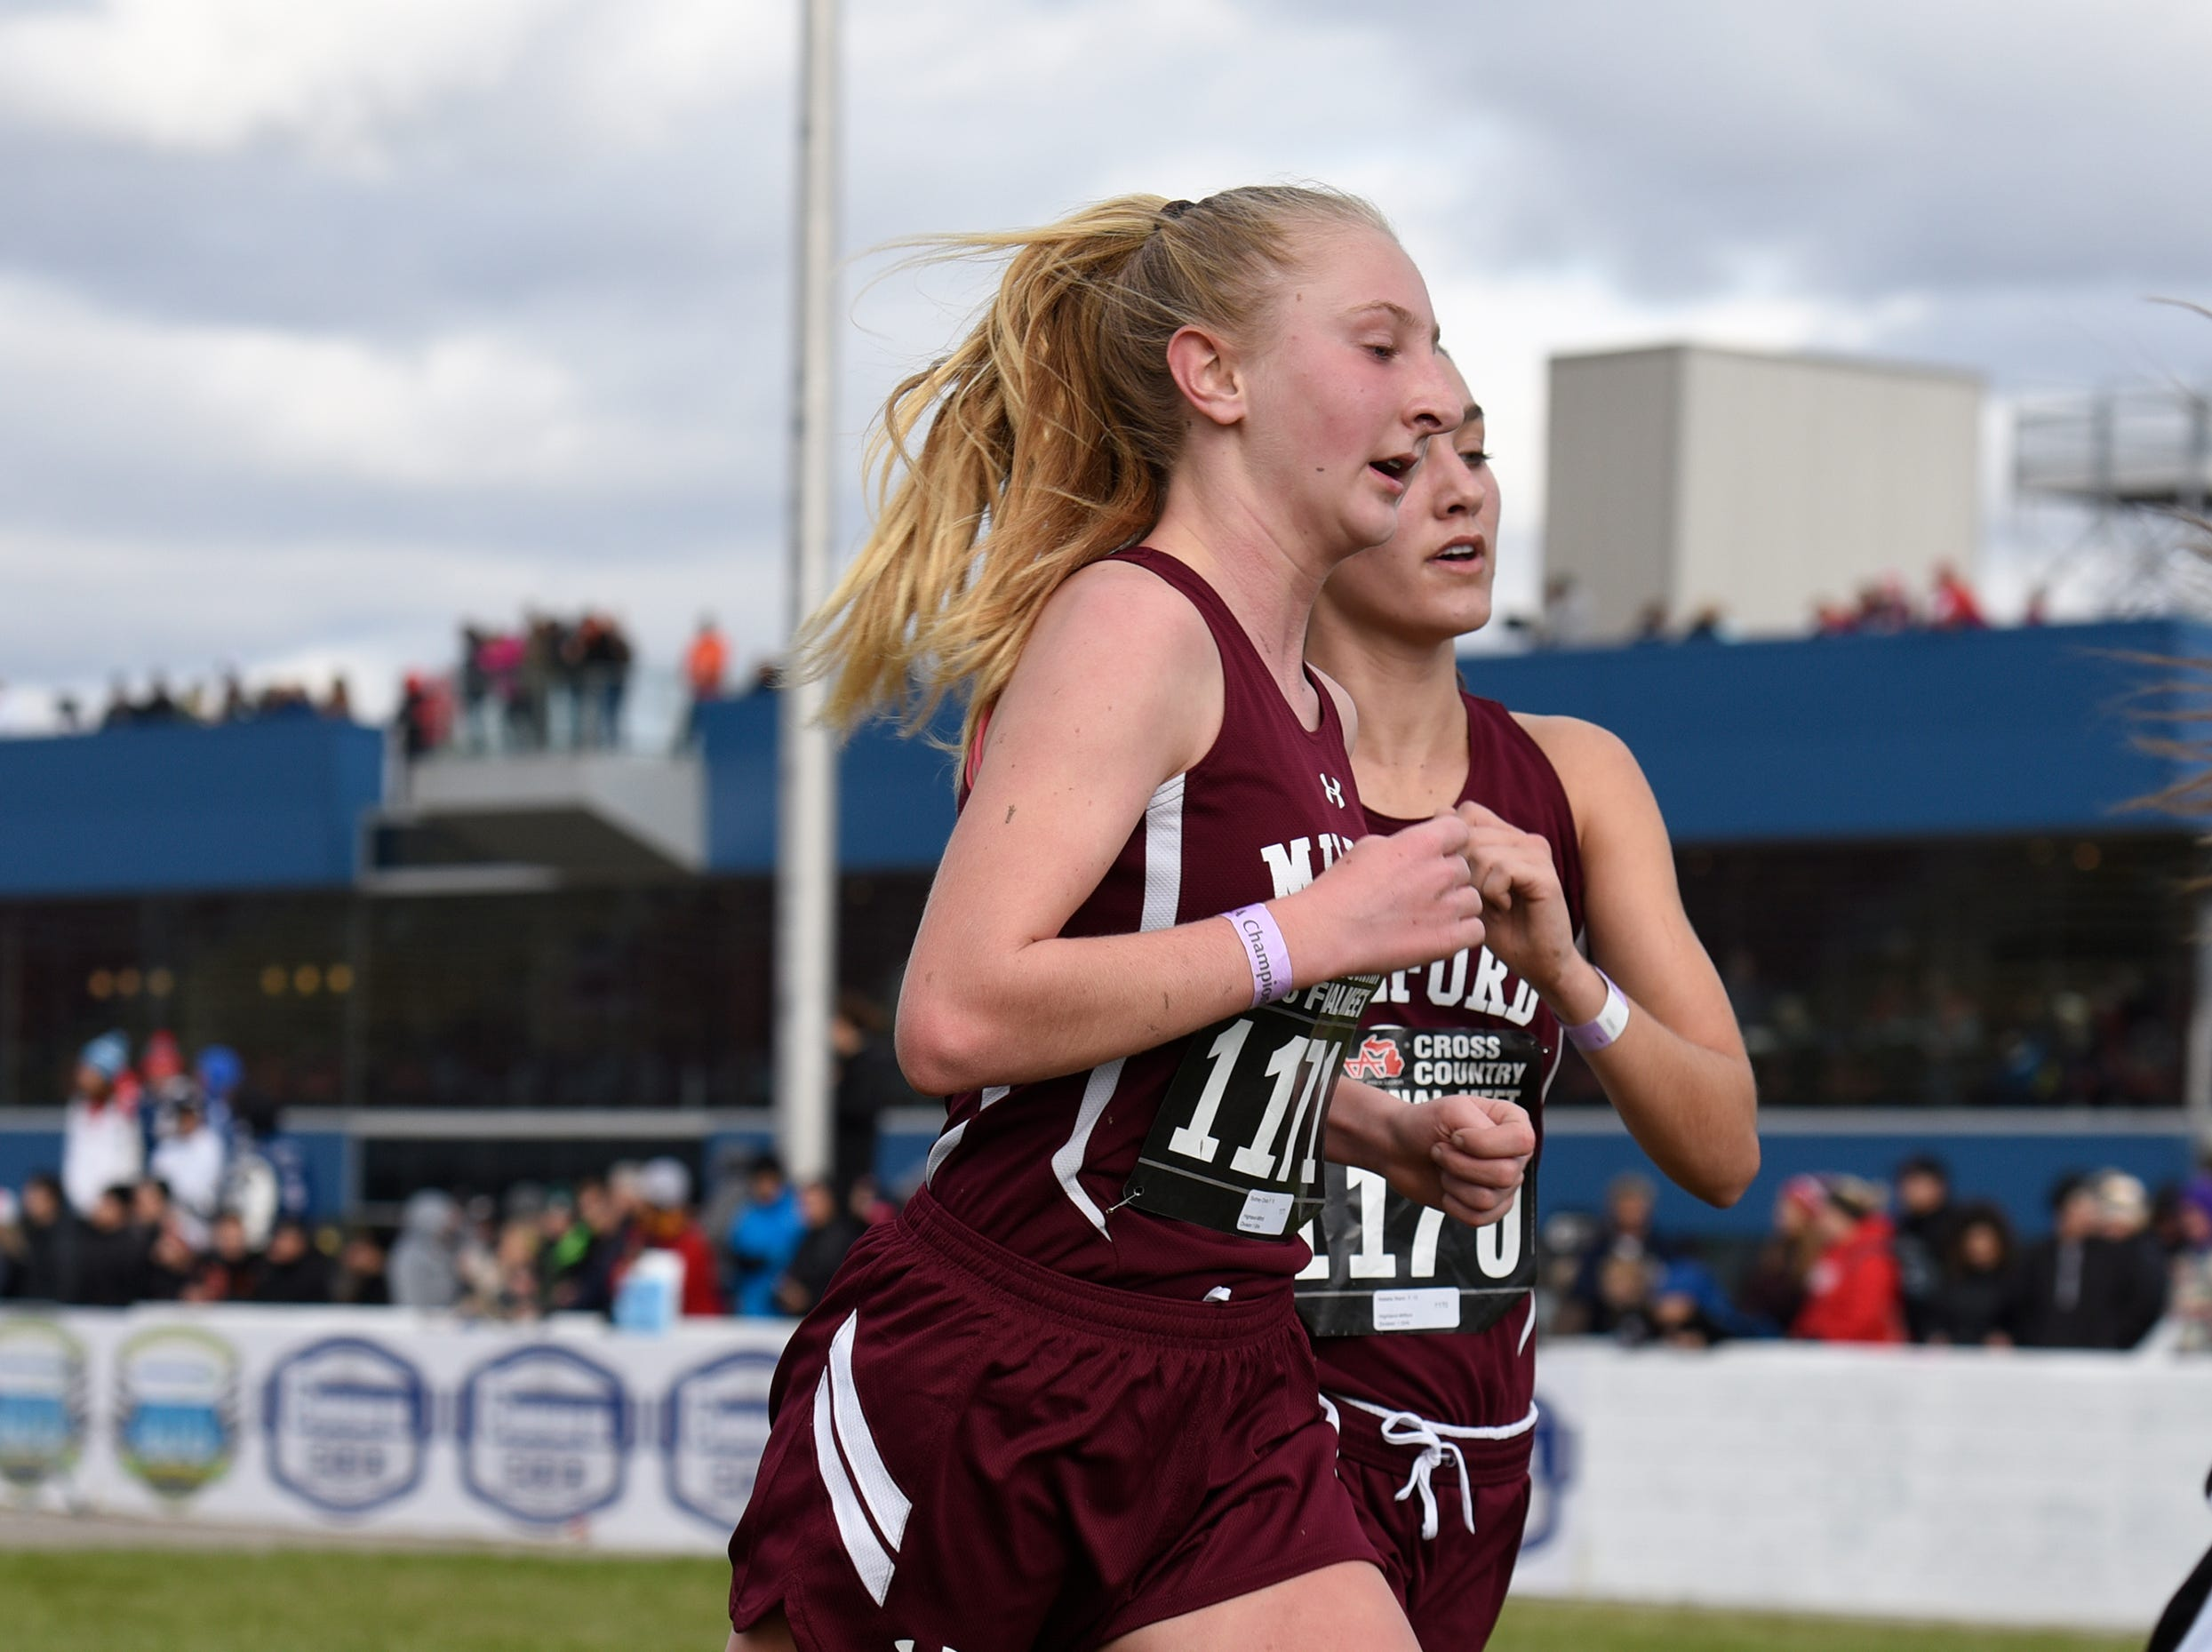 Milford's Sydney Chura (1171) and Victoria Heiligenthal during the Division 1 2018 cross country finals at Michigan International Speedway.